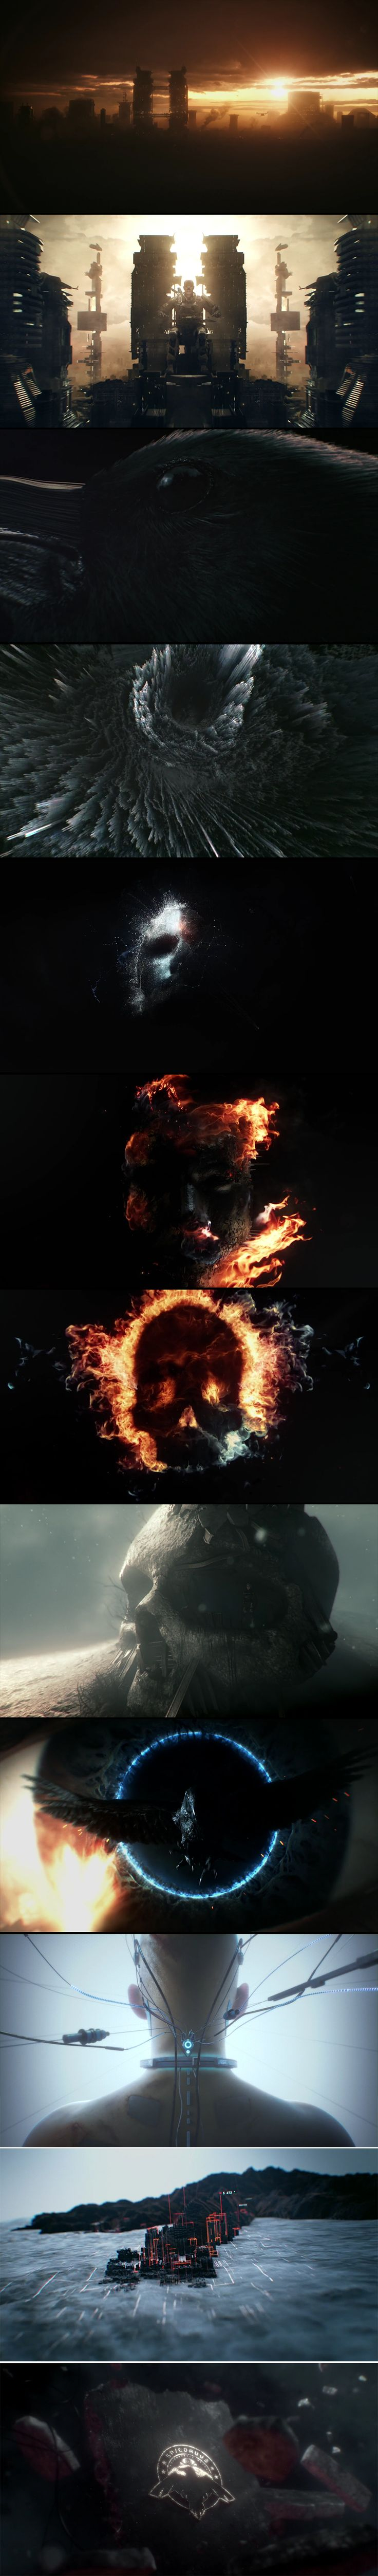 Method Studios Simon Cassels montage for Call of Duty BlackOps III -- cherryhill